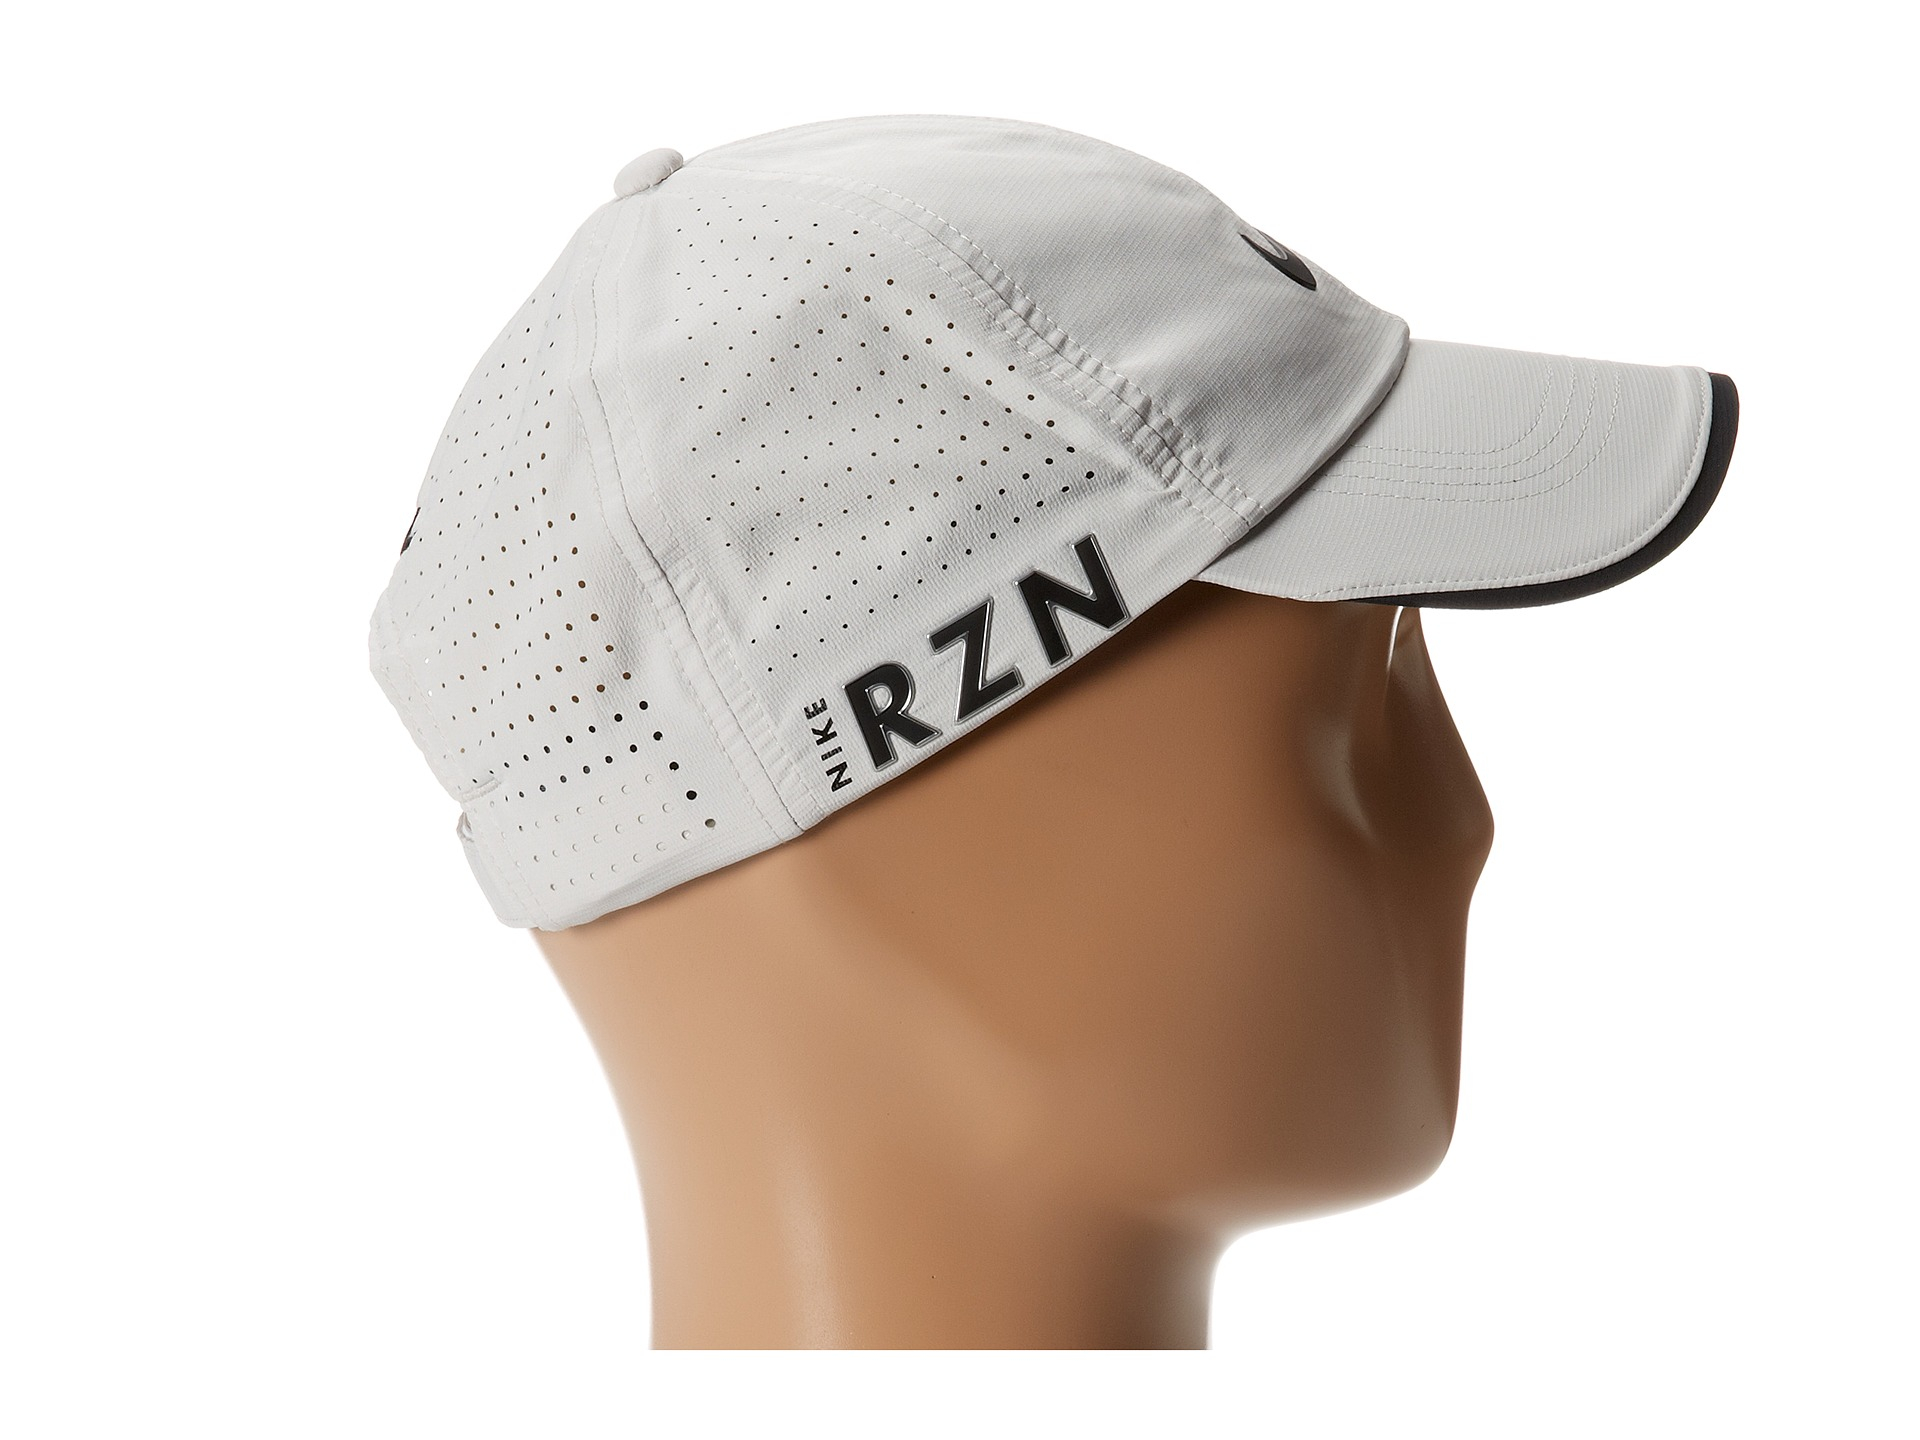 b4ce912407a Lyst - Nike Tour Perforated Cap in White for Men